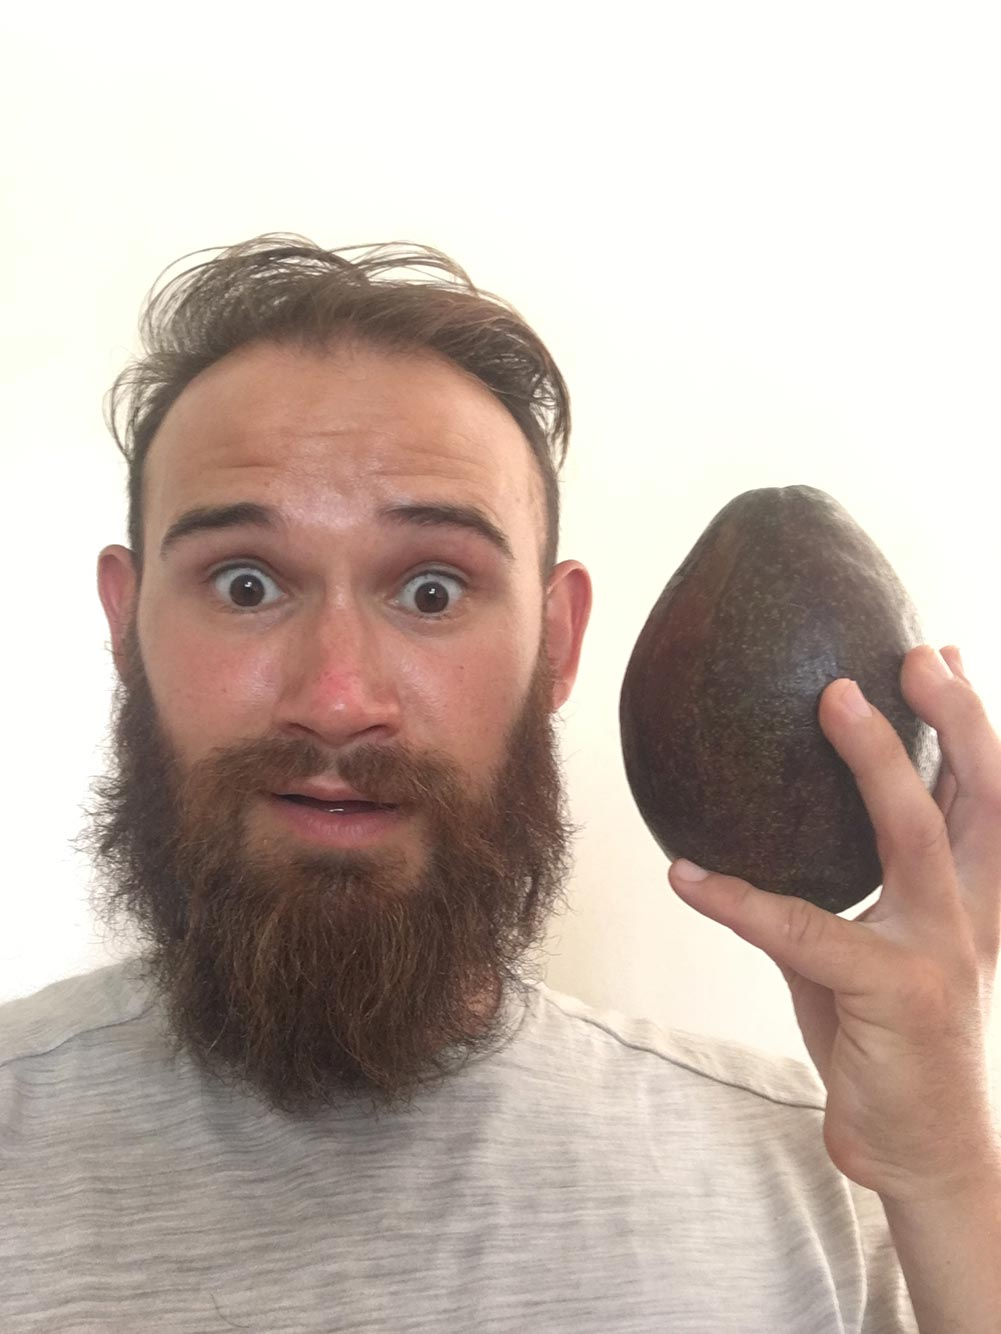 Did I mention the avocados are as big as Dan's head (minus his beard).